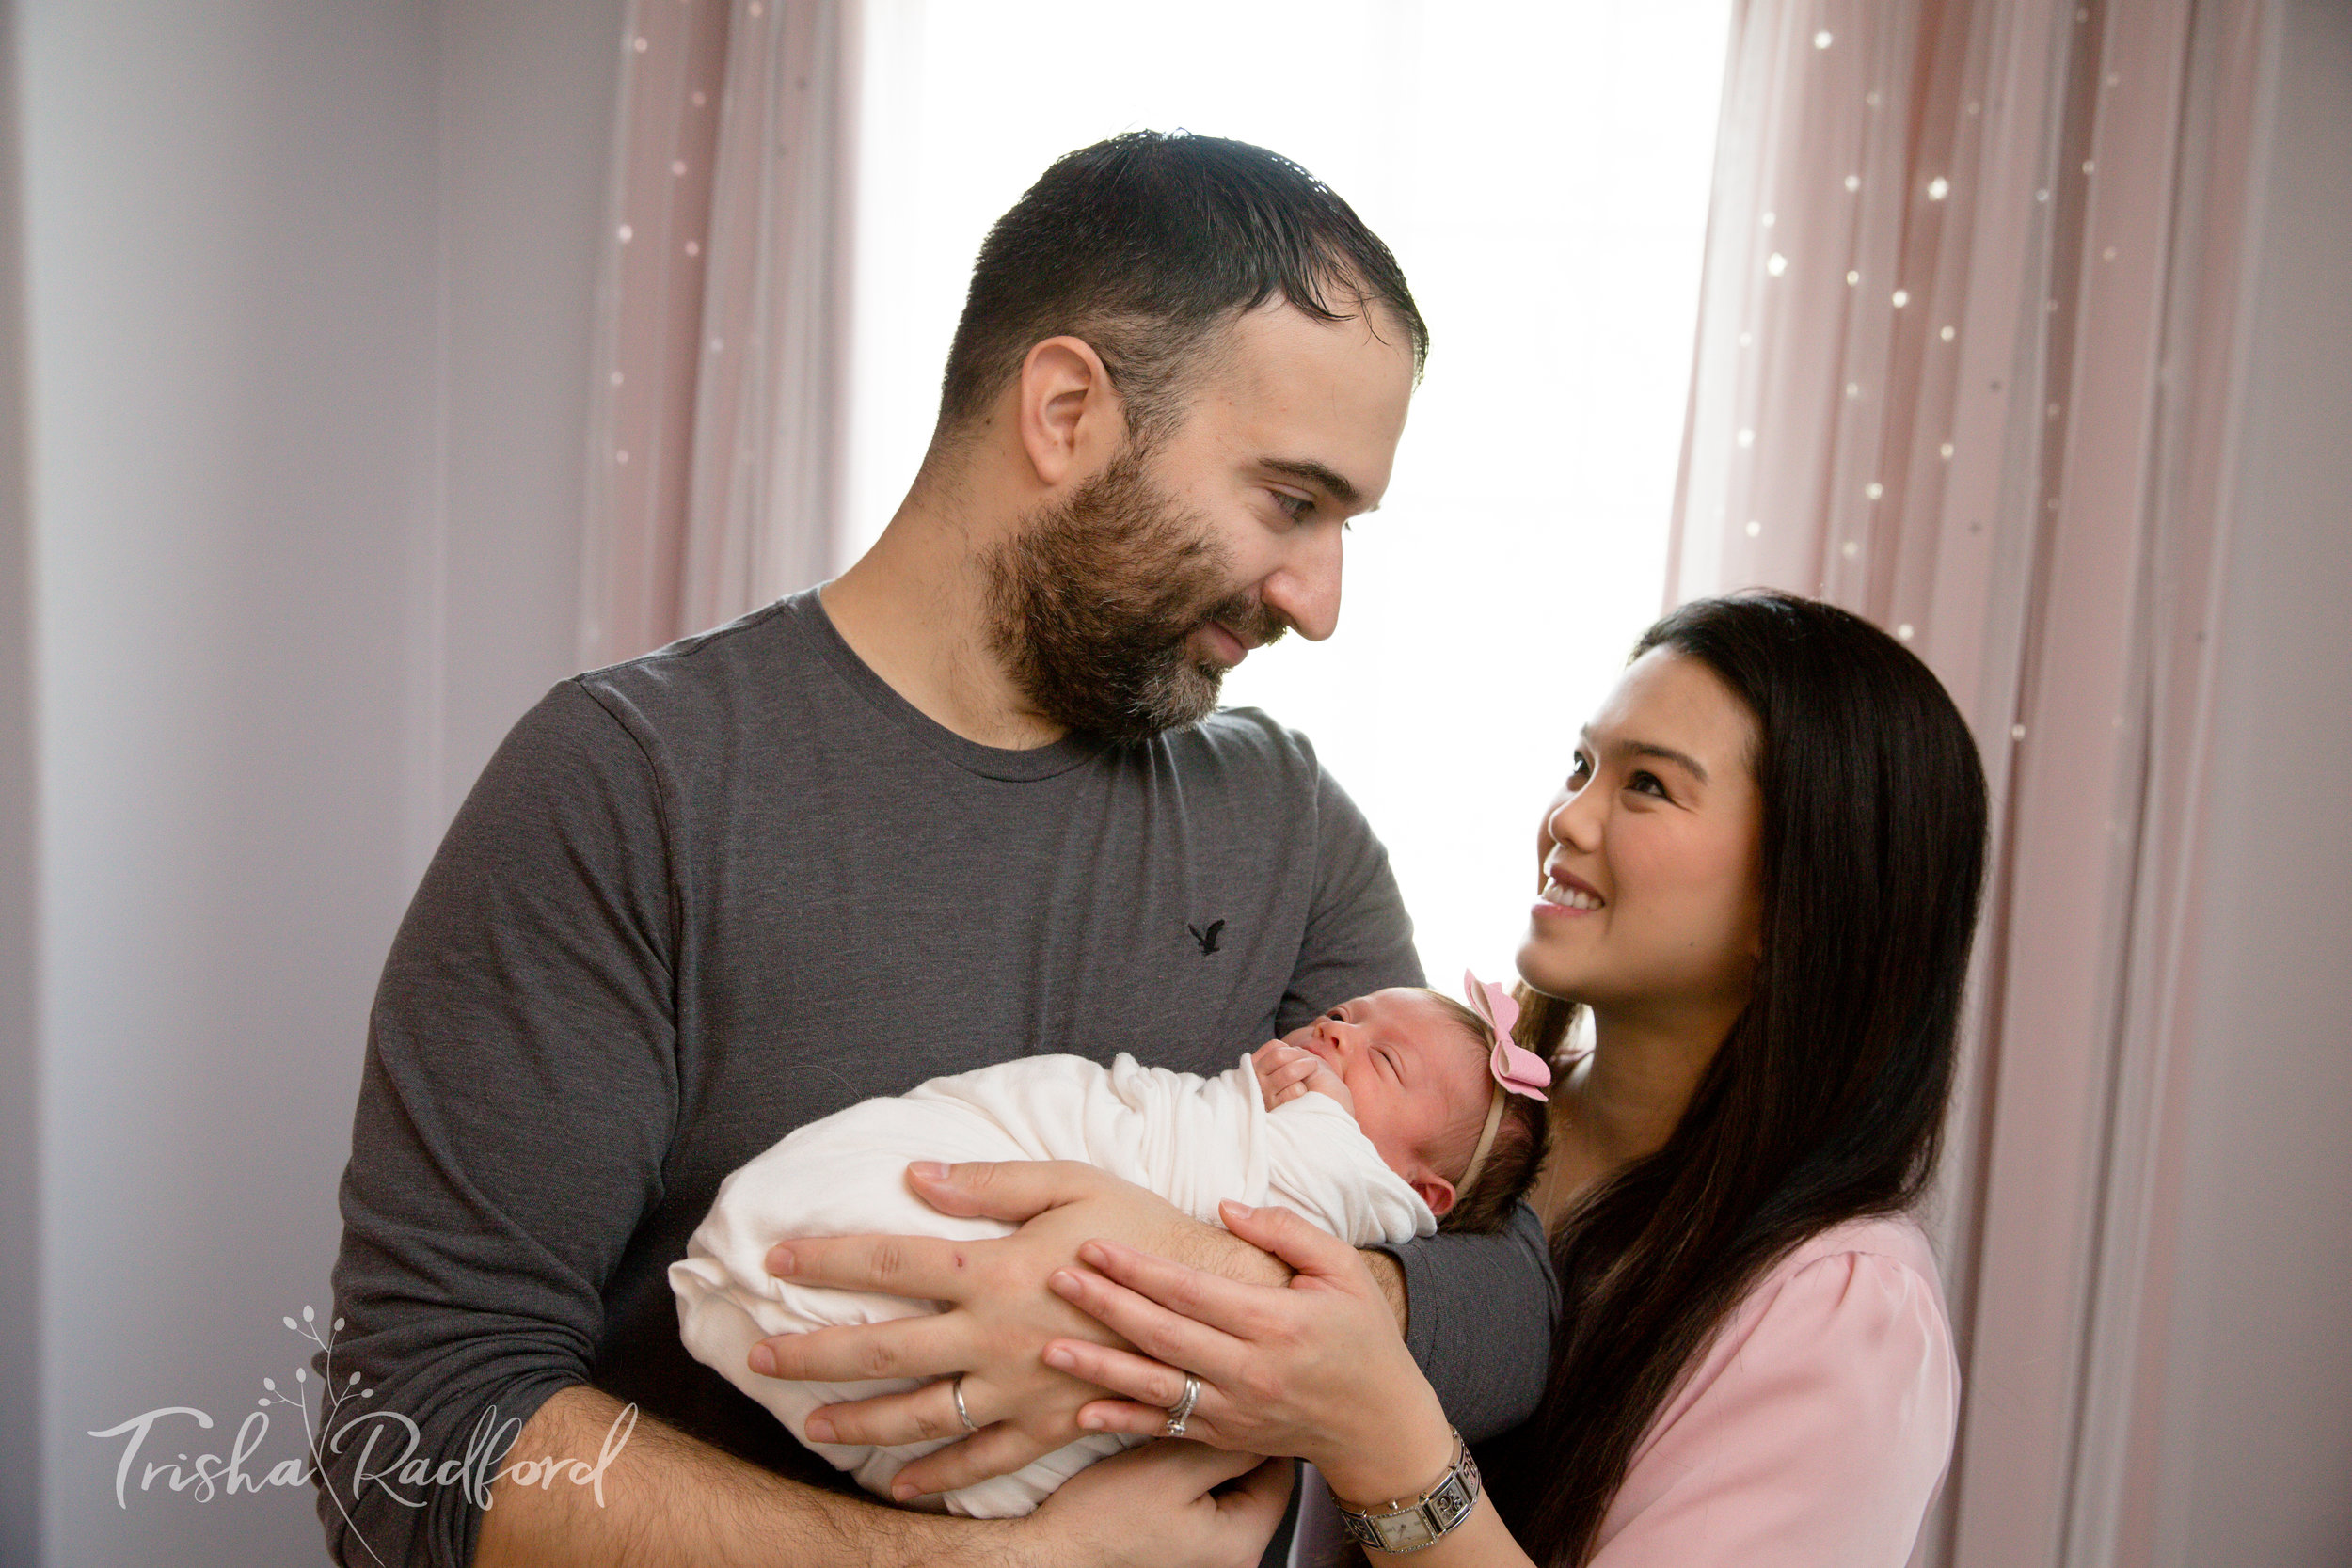 Lake Stevens Lifestyle newborn photographer in snohomish county